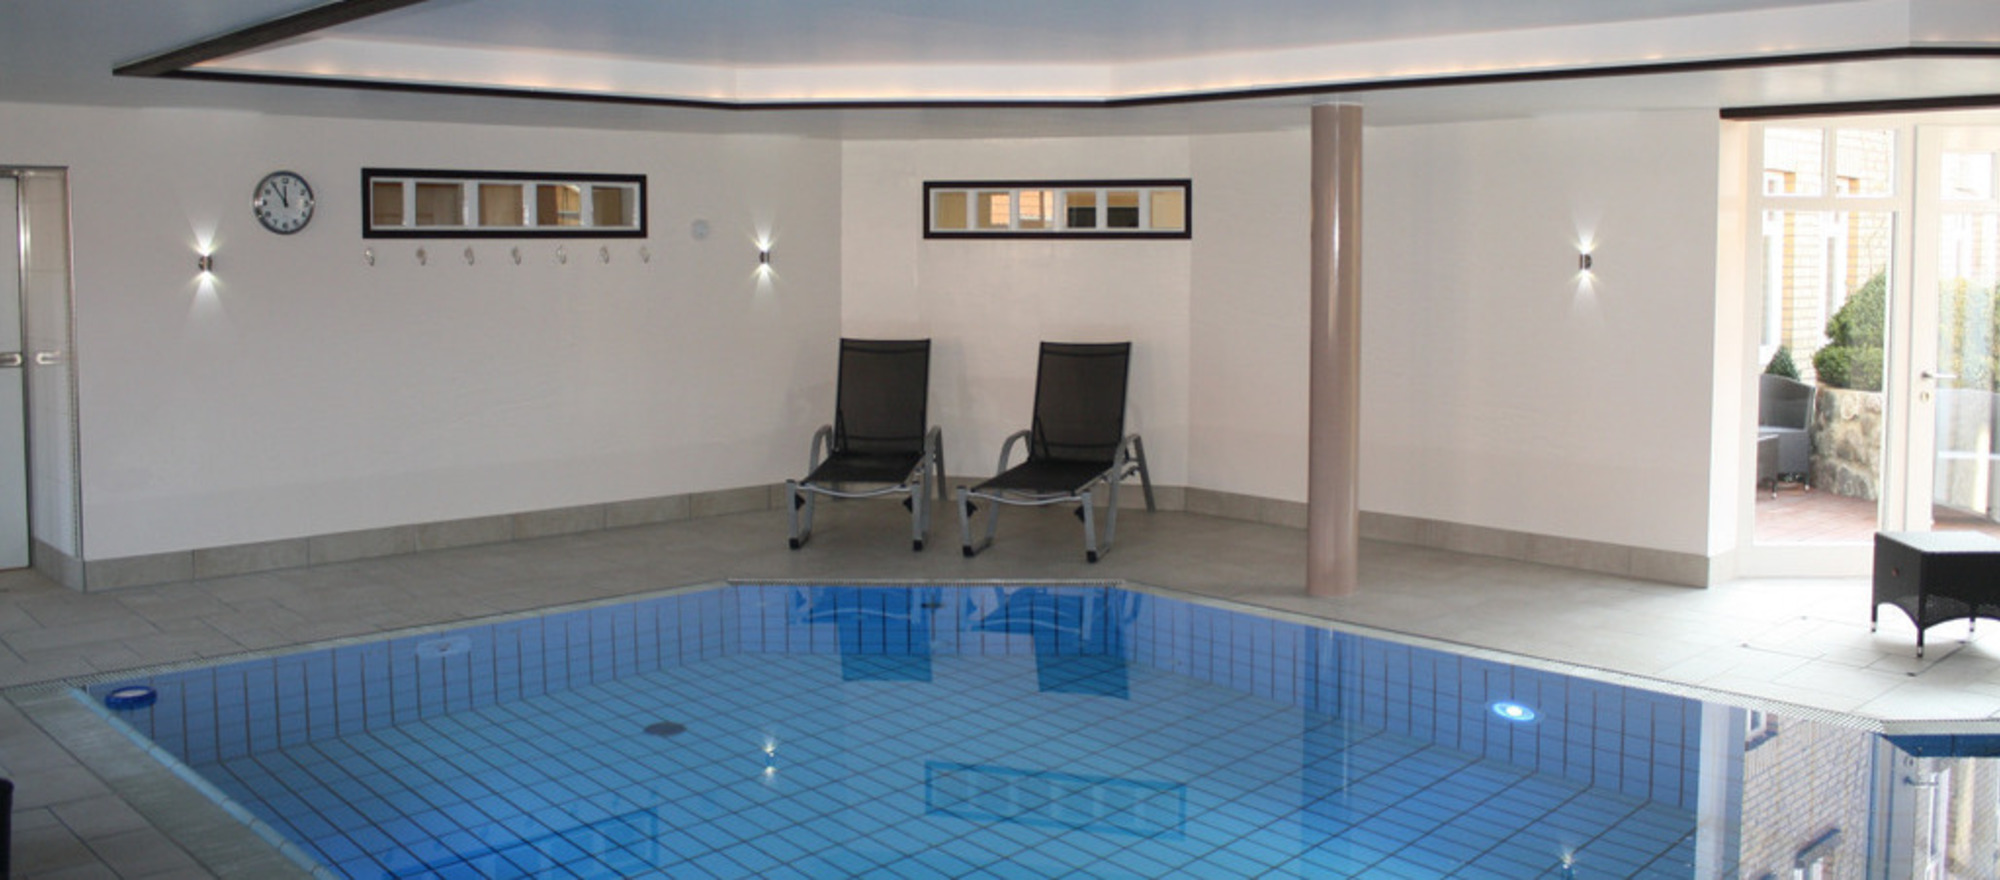 Swimming pool in Ringhotel Aquarium Boddenberg in Friedrichstadt, 4 star hotel  at the north sea